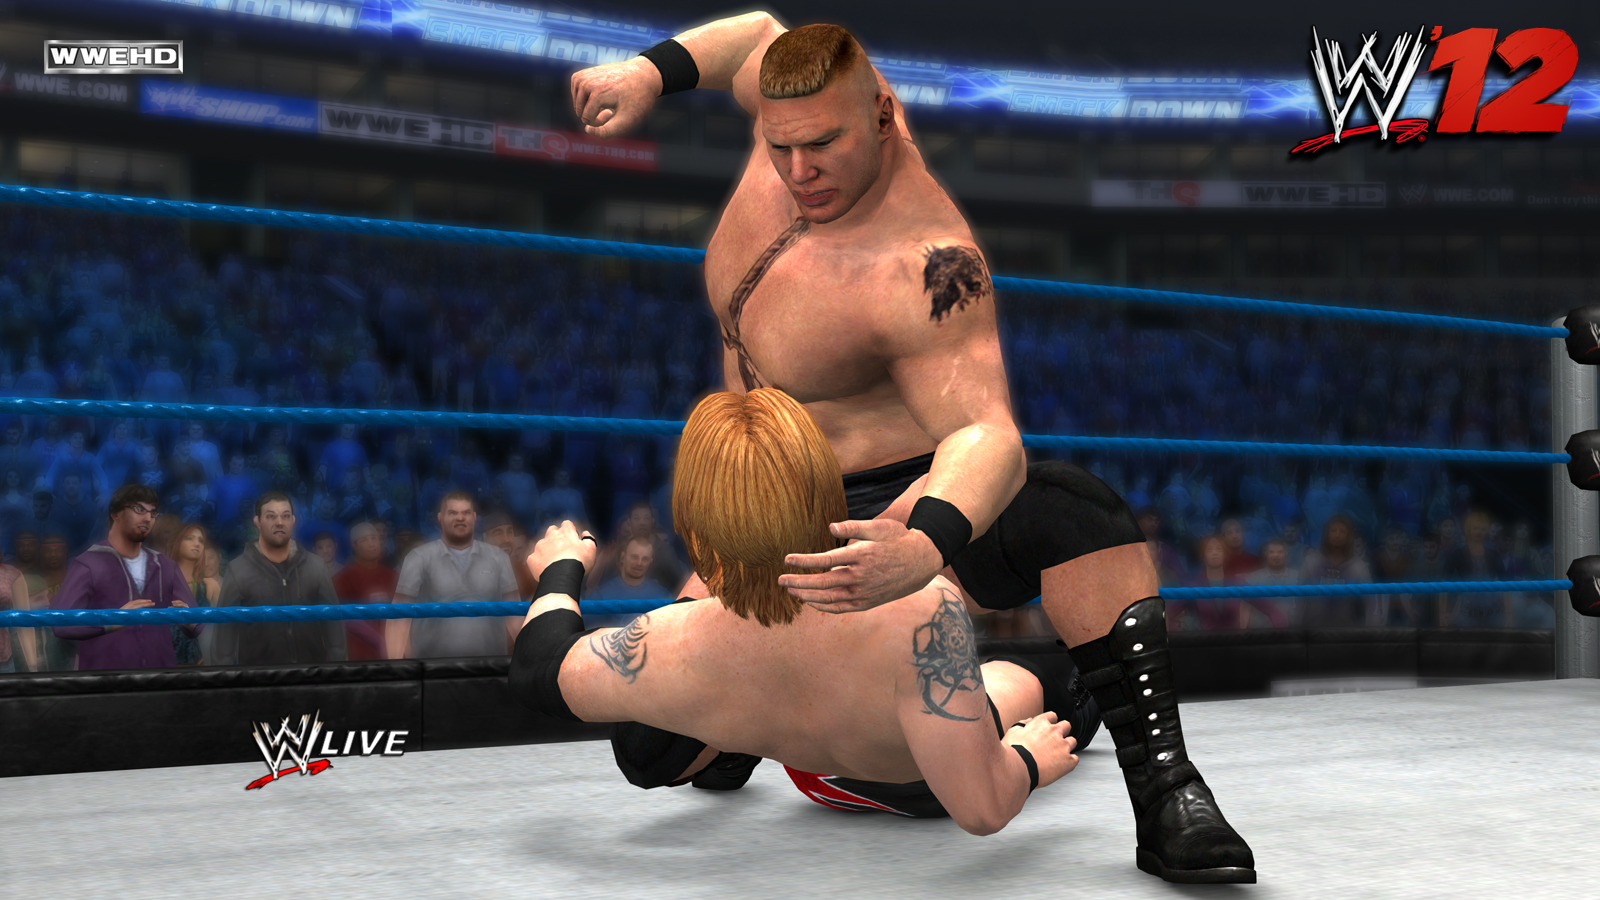 Wwe Games For PC Wwe 12 pc game